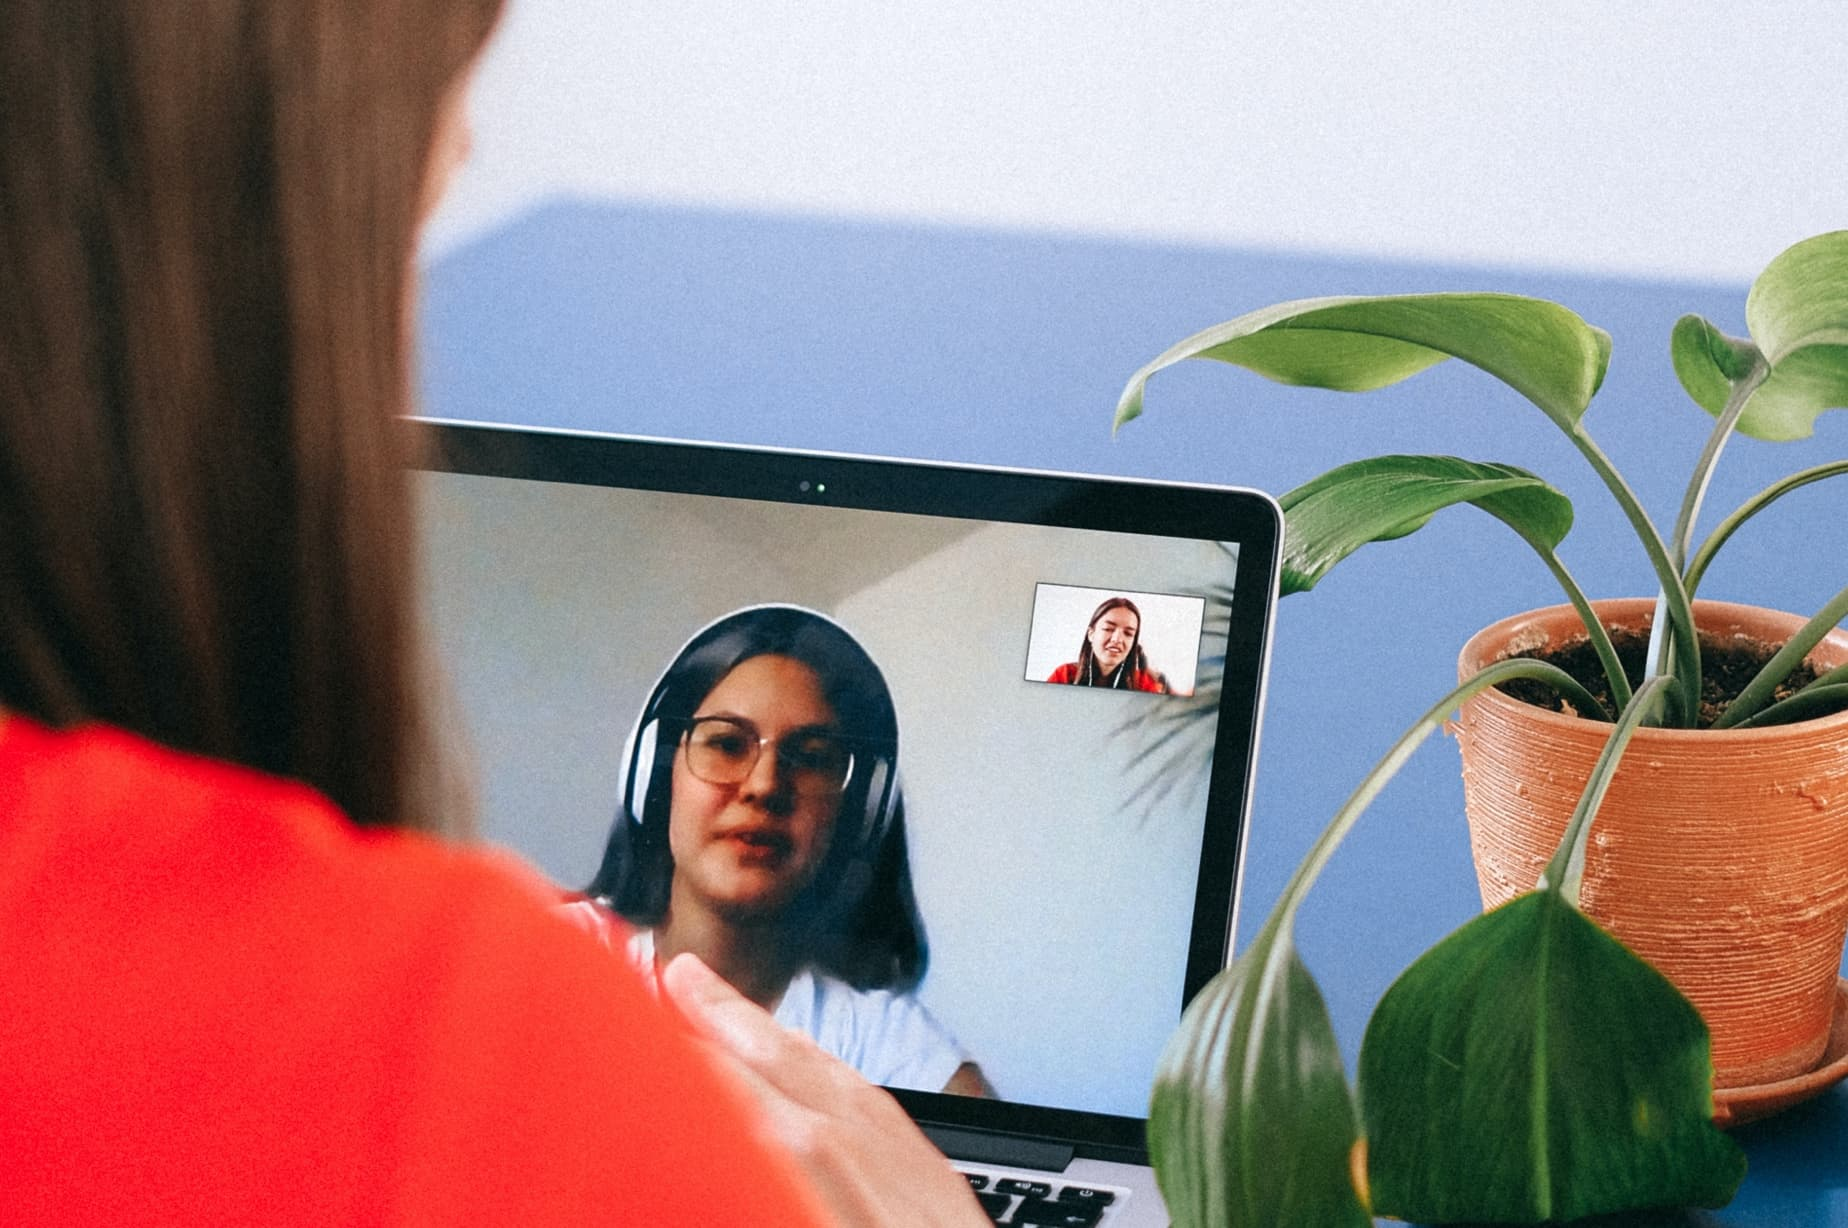 Two women on a video call on their laptops getting to know each other